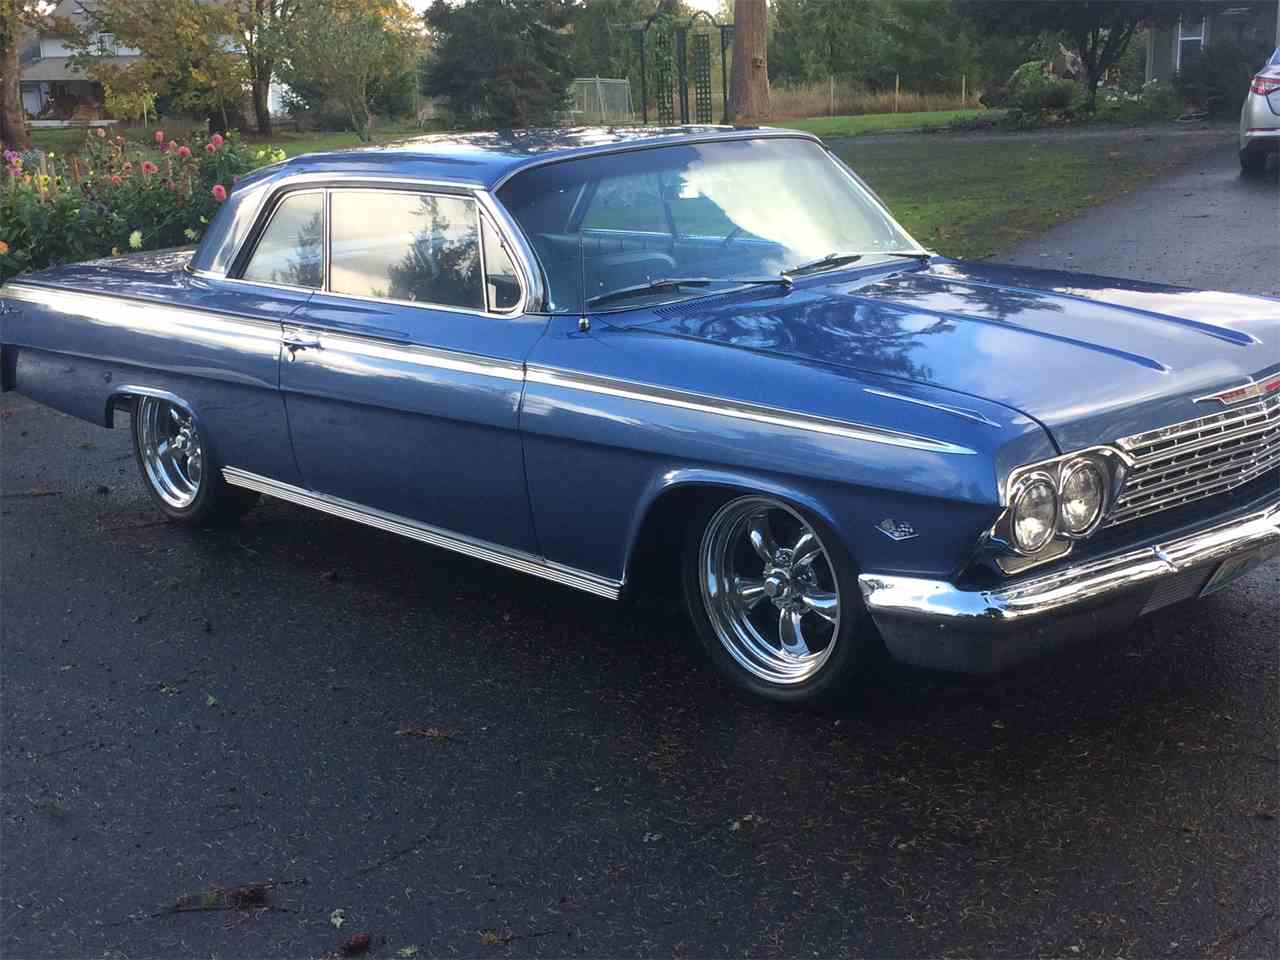 Large Picture of Classic 1962 Impala located in Washington - $33,500.00 Offered by a Private Seller - M85I